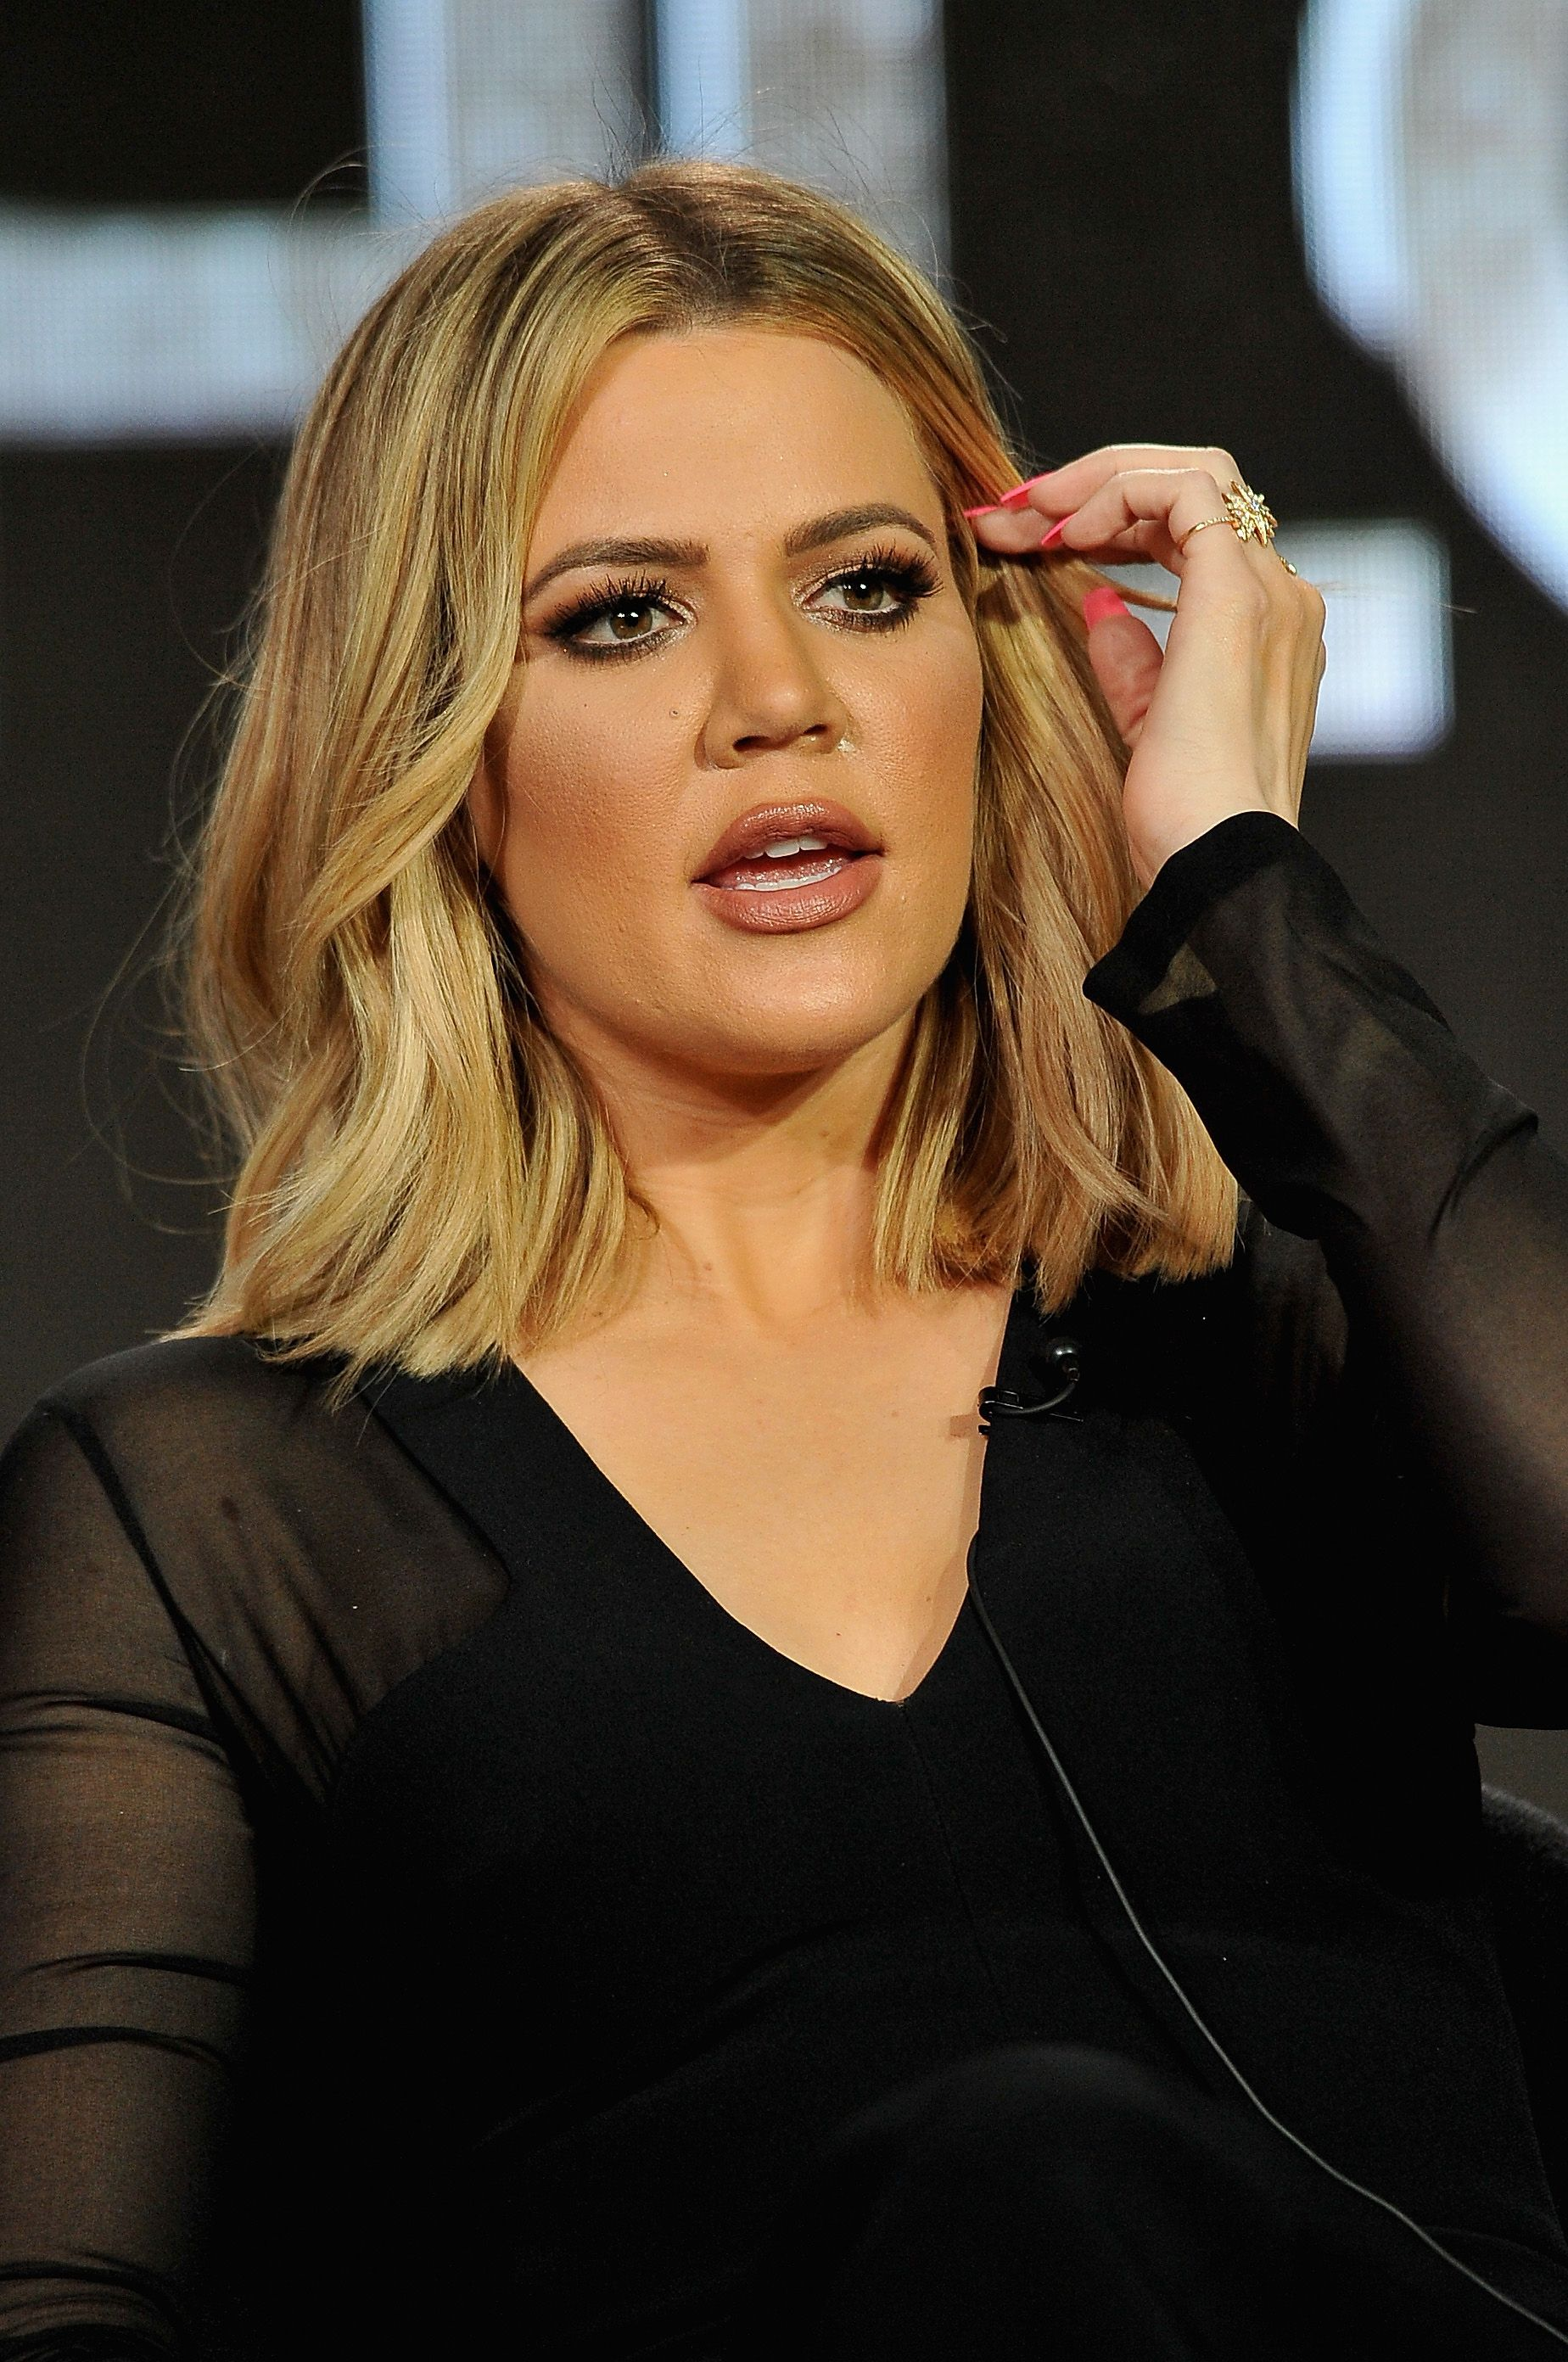 Khloe Kardashian  speaks onstage during the A+E Networks 2016 Television Critics Association Press Tour at The Langham Huntington Hotel and Spa on January 6, 2016 i. | Photo: Getty Images